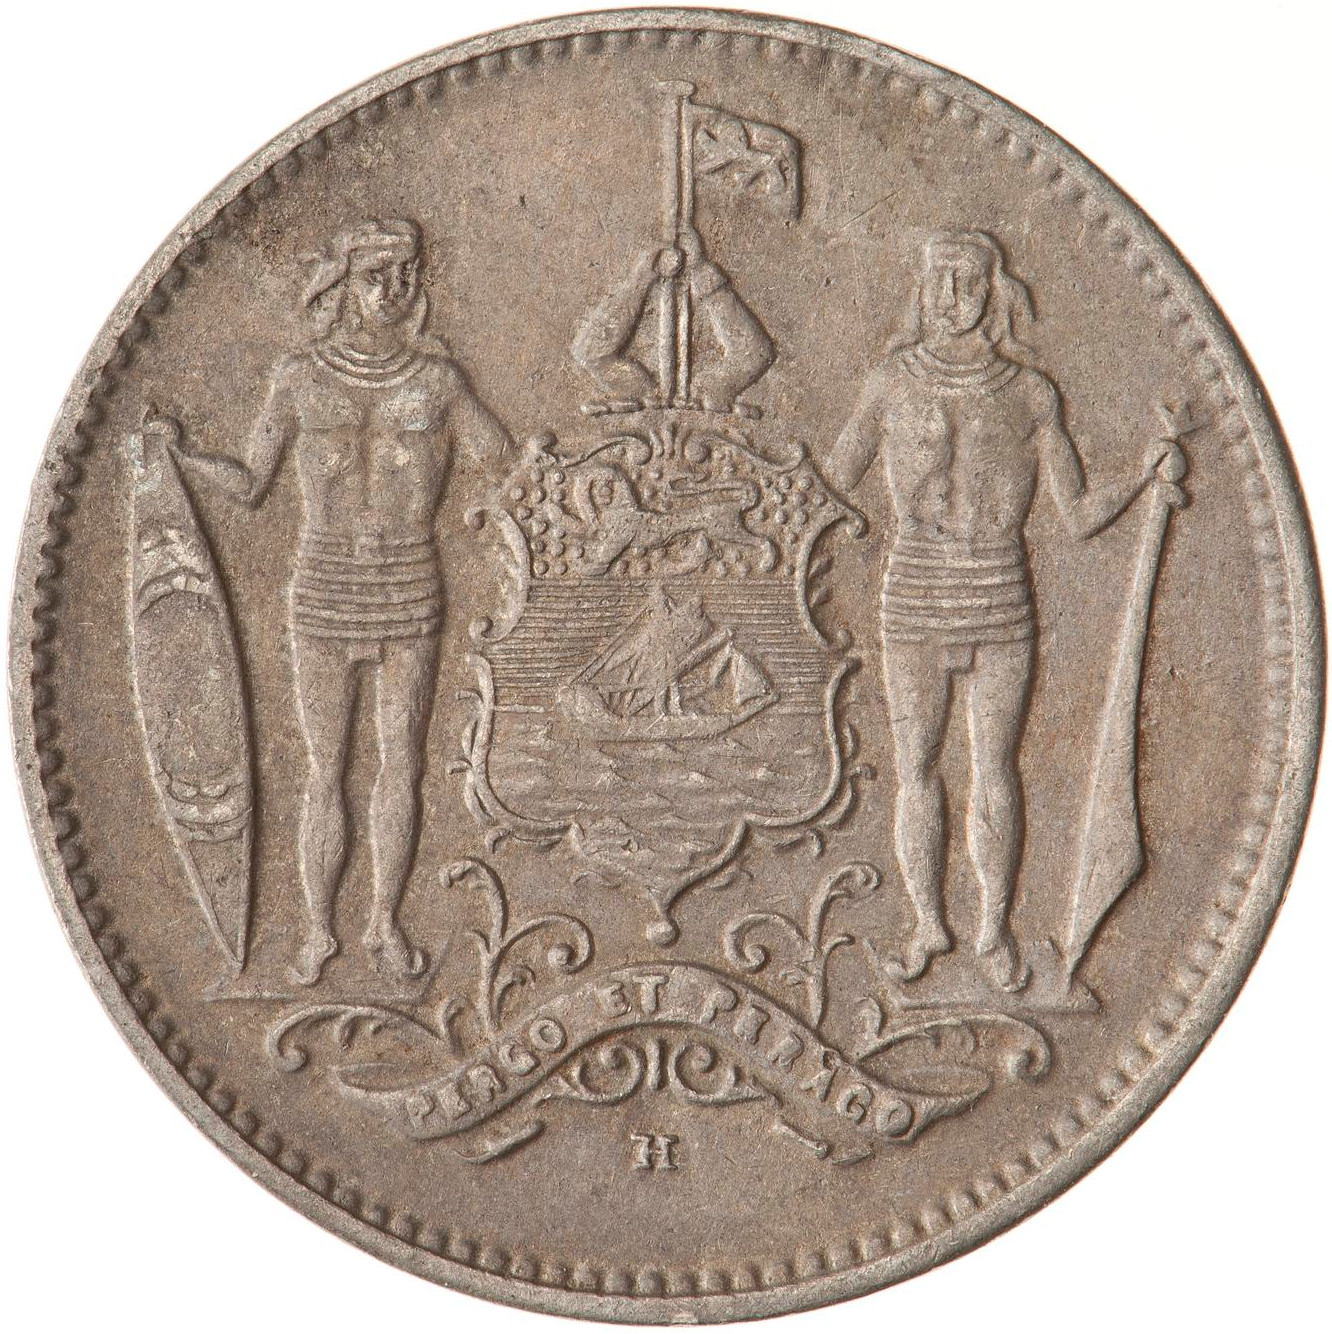 North Borneo / One Cent 1938 - obverse photo